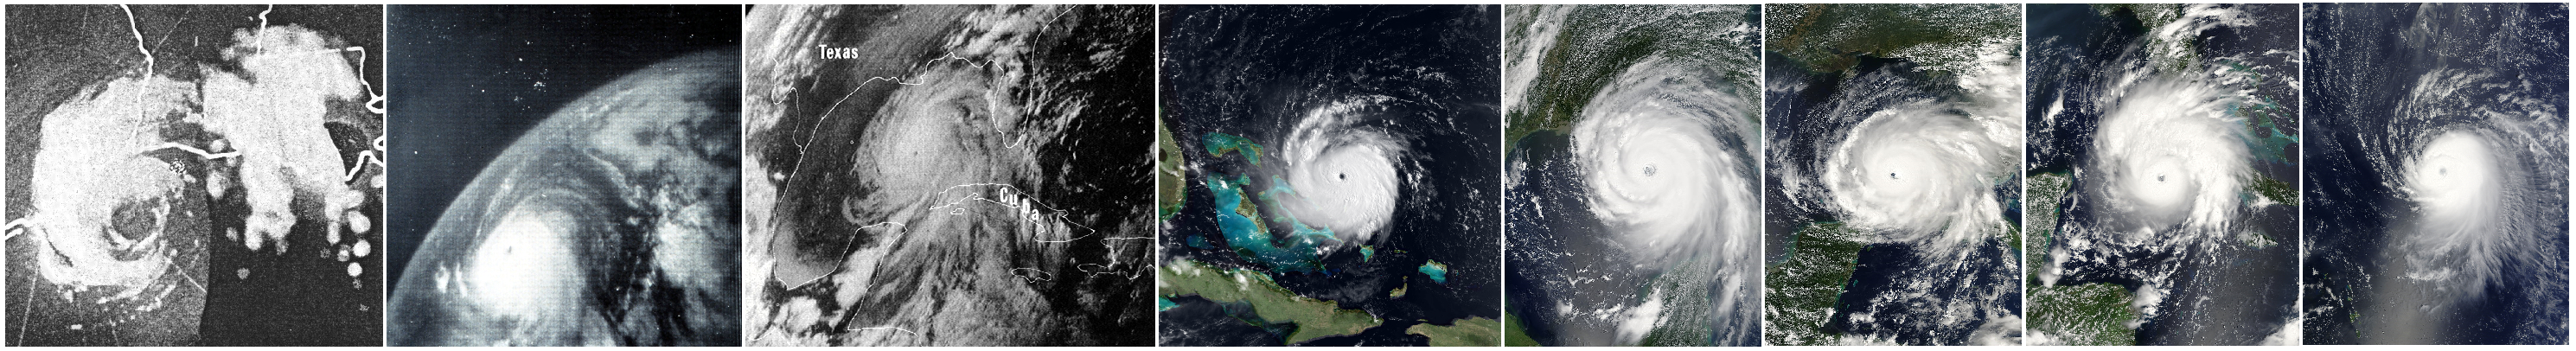 Images of Hurricanes from left to right, Audrey, Betsy, Camille, Andrew, Katrina, Rita, Gustav, and Ike. Images used are in public domain, pulled from Wikipedia Commons.